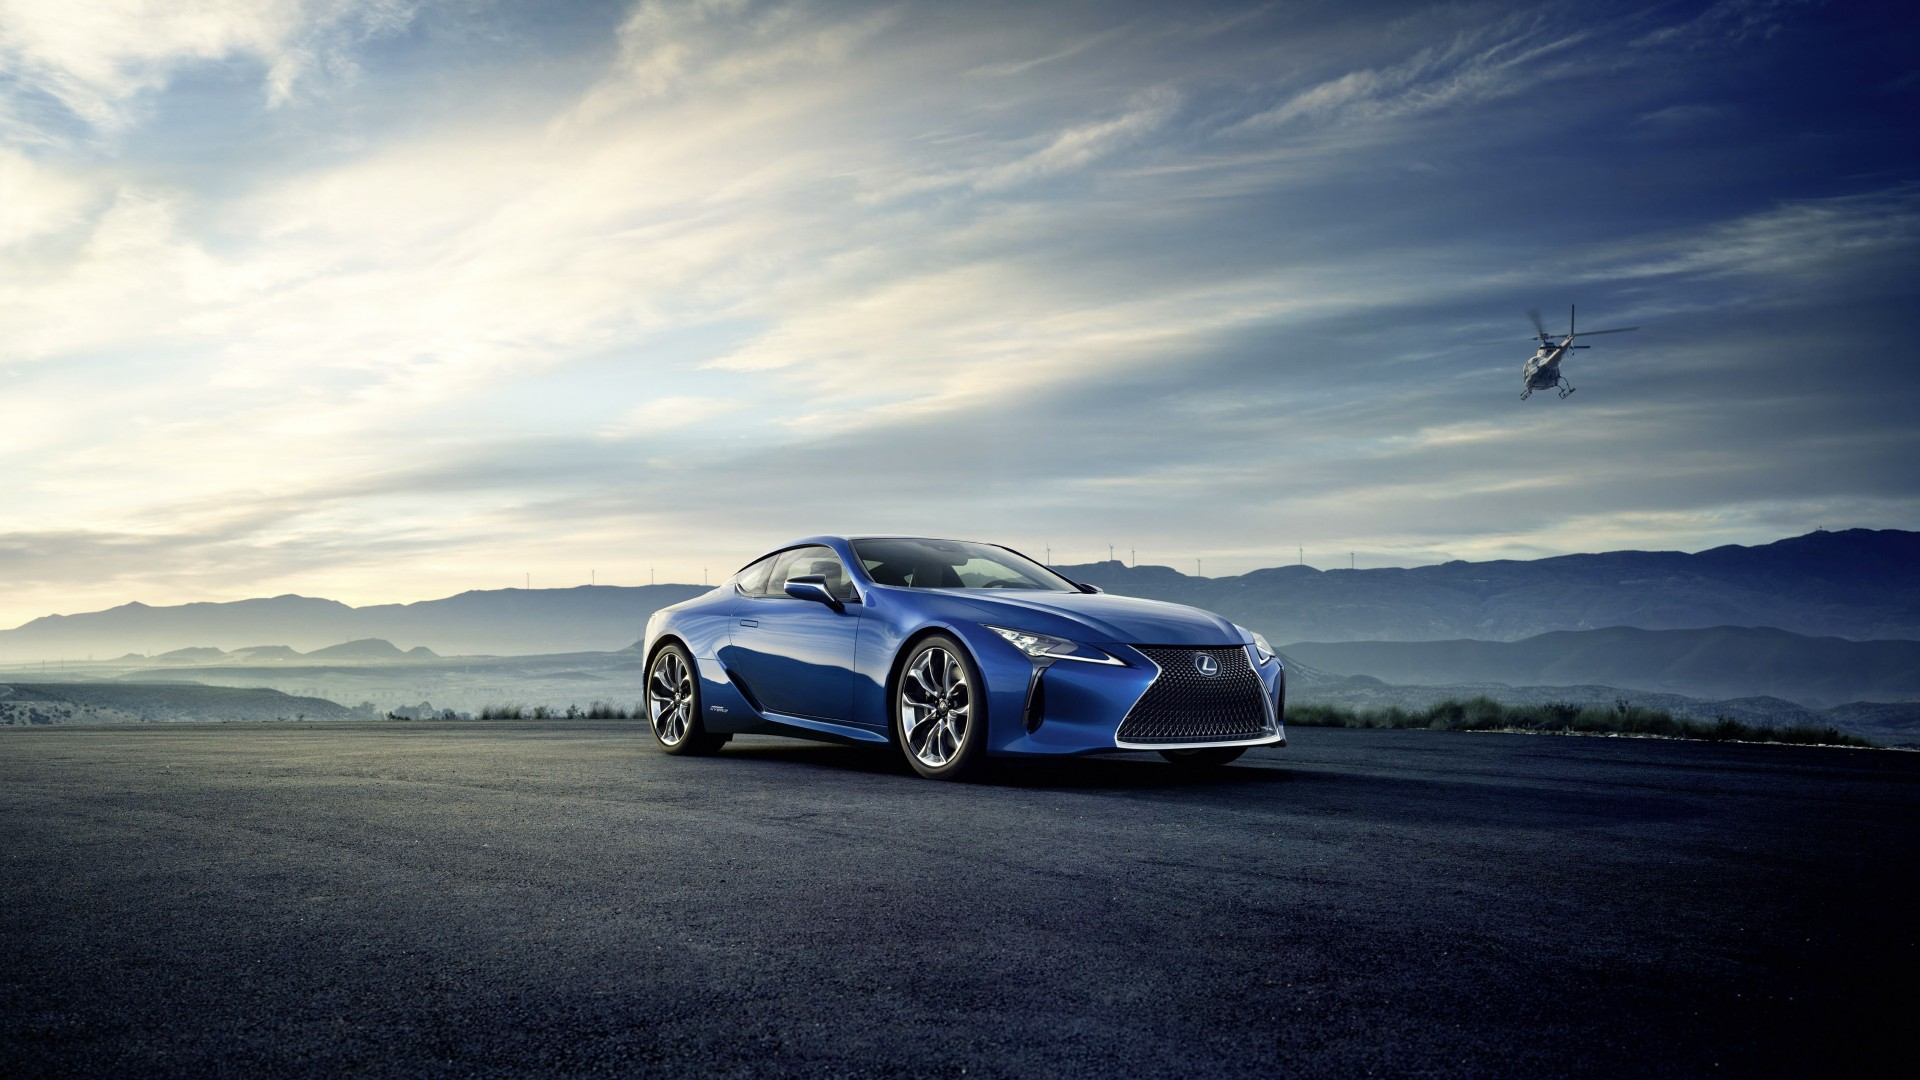 Wallpapers Hd Iphone 5s 2018 Lexus Lc500h 4k Wallpapers Hd Wallpapers Id 19286